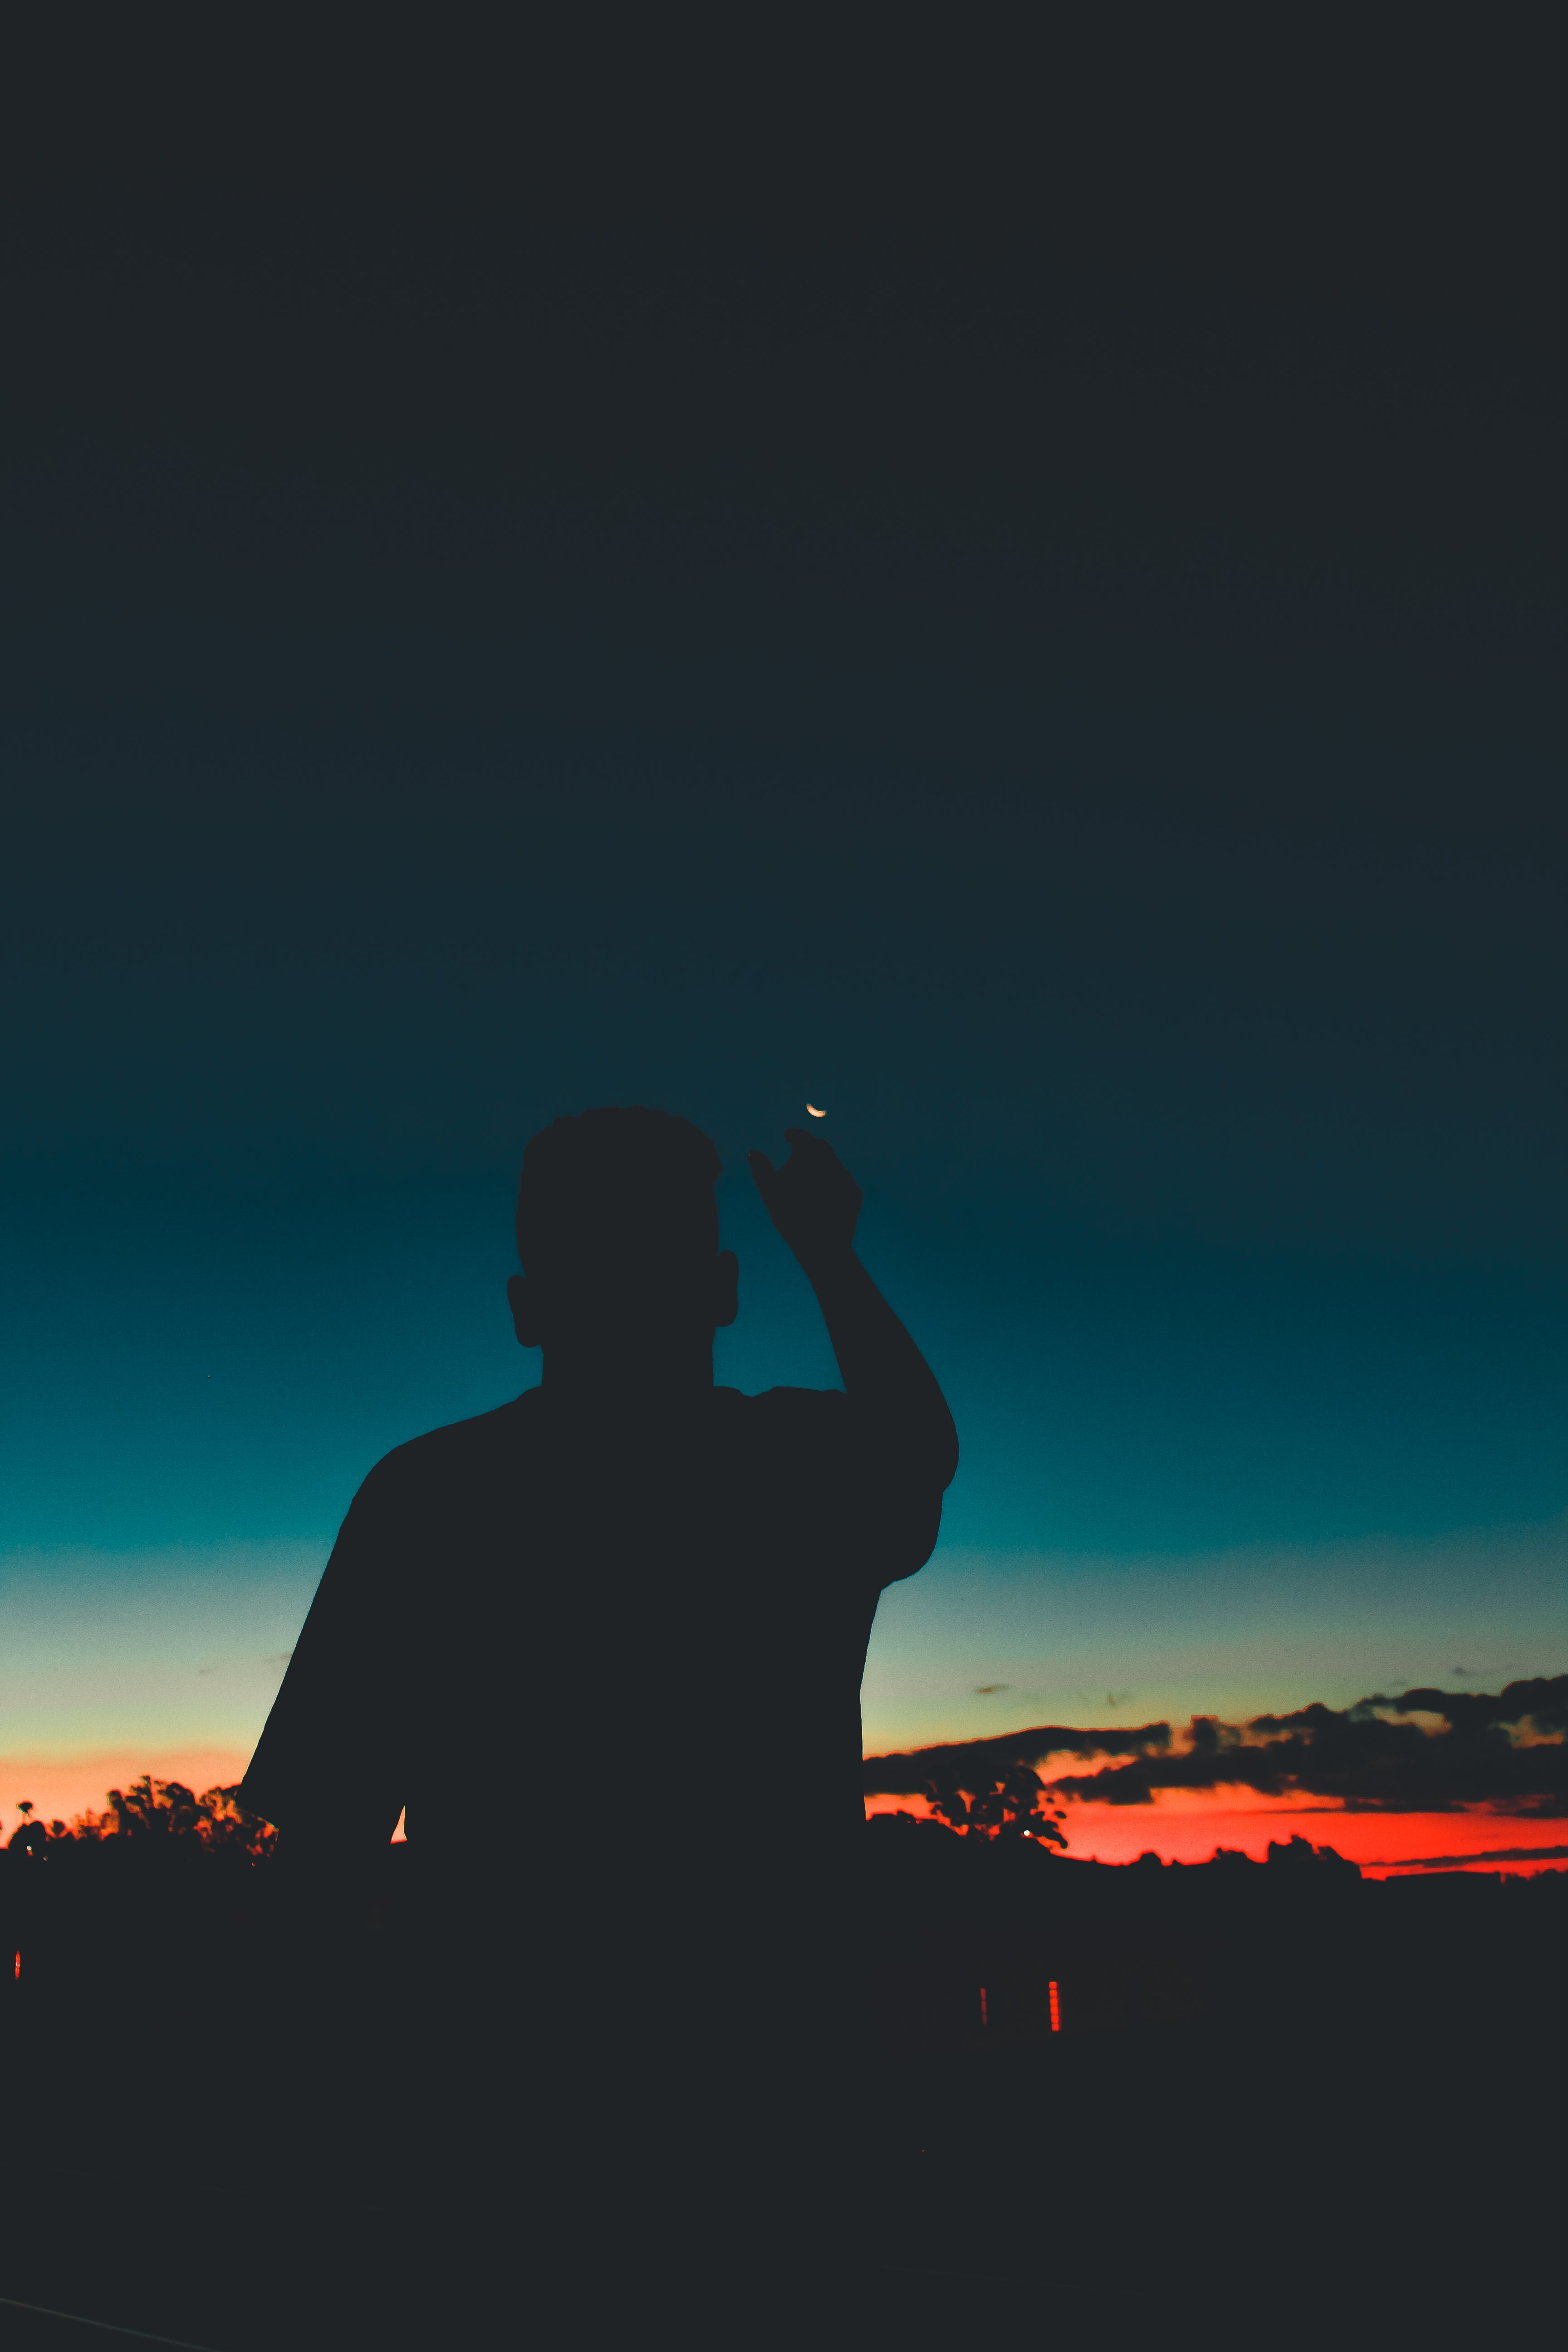 Silhouette Of Man Pointing Moon